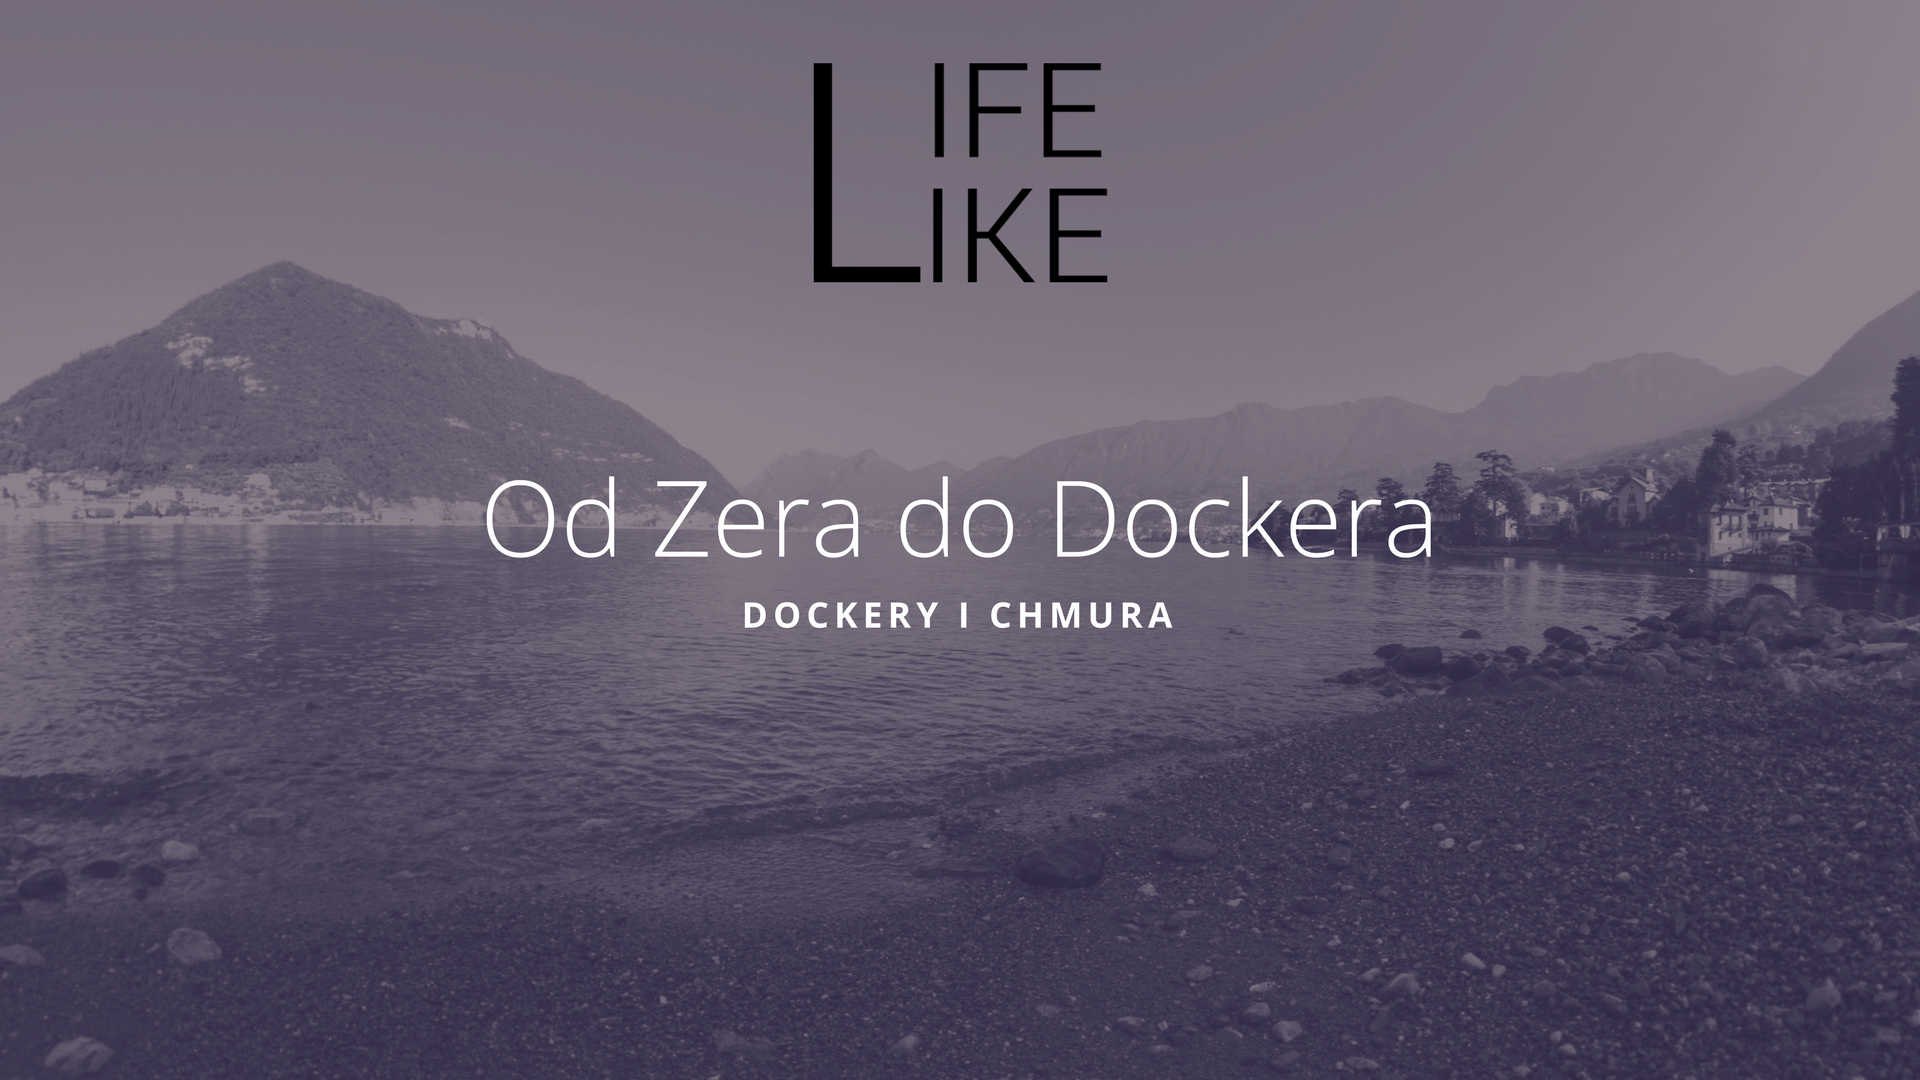 Od Zera do Dockera: Docker i Chmury